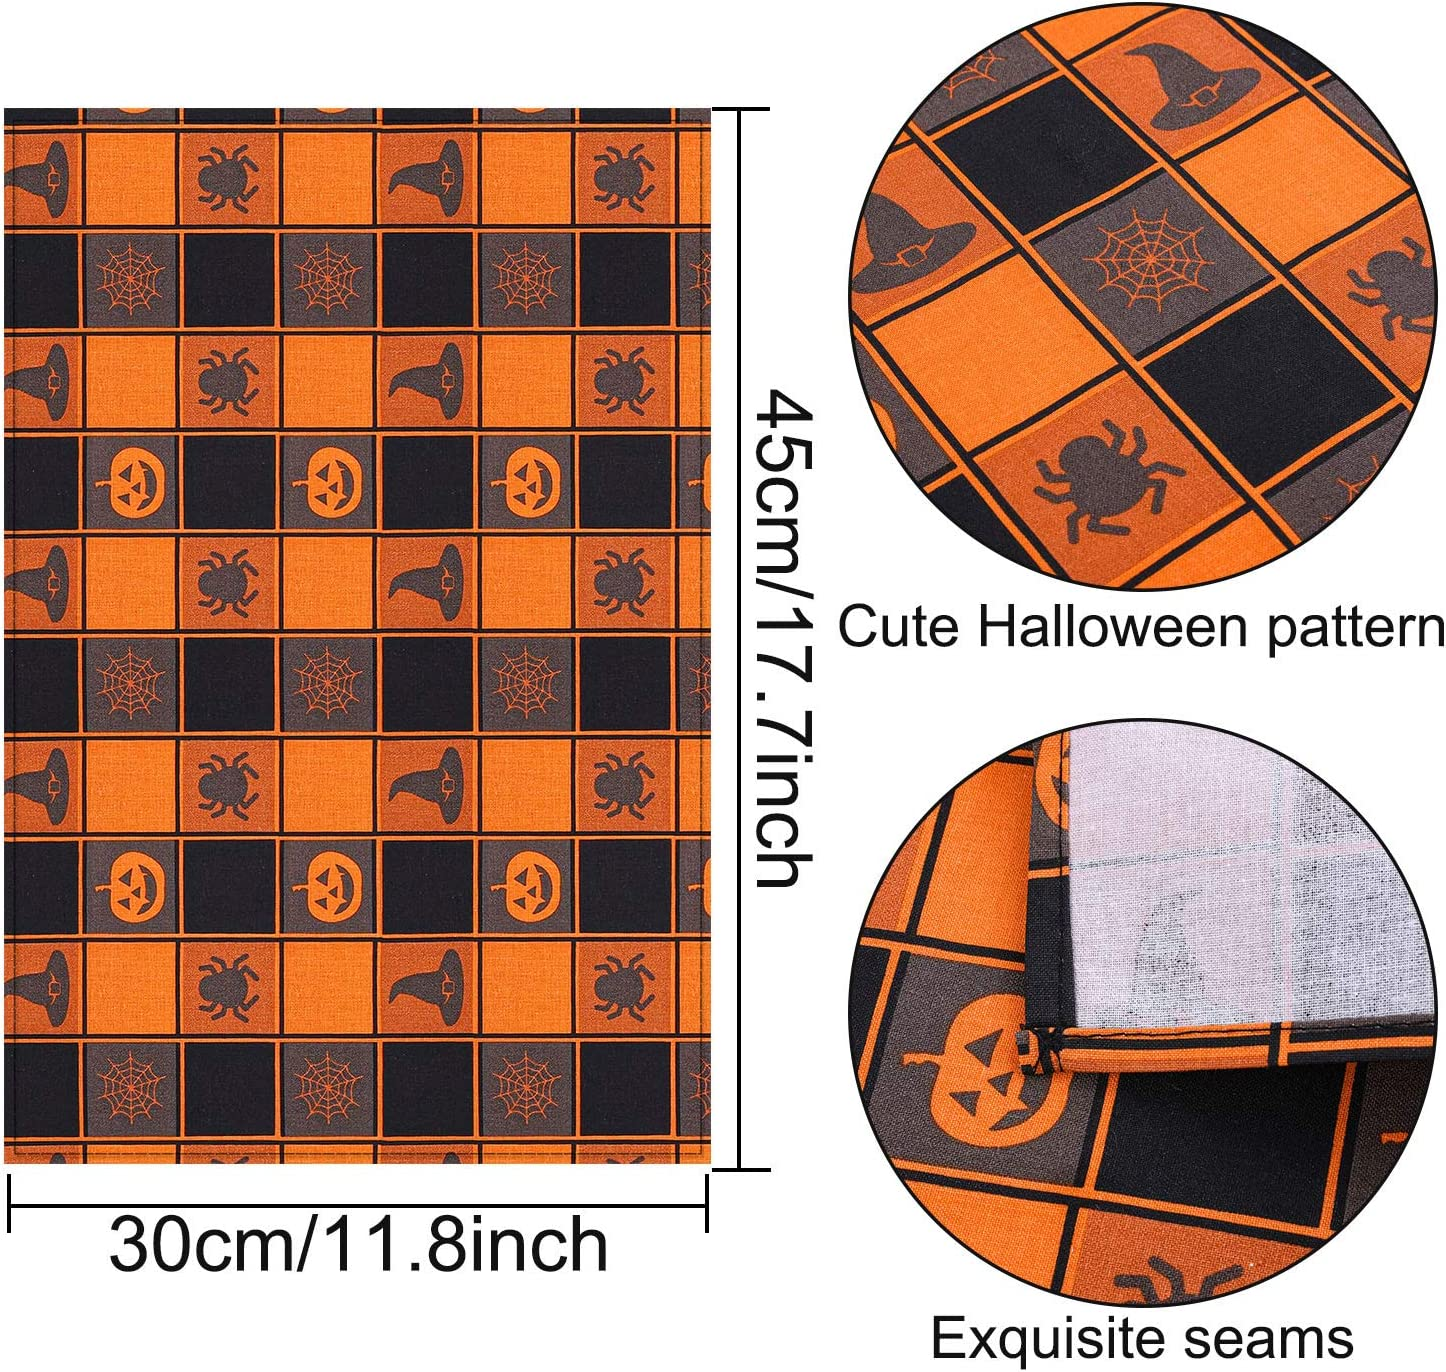 Aneco 6 Pack Halloween Buffalo Plaid Placemats 12 x 18 Inches Halloween Placemats Place Mats Cotton Black Orange Check Placemats Place Mats for Halloween Table Decoration